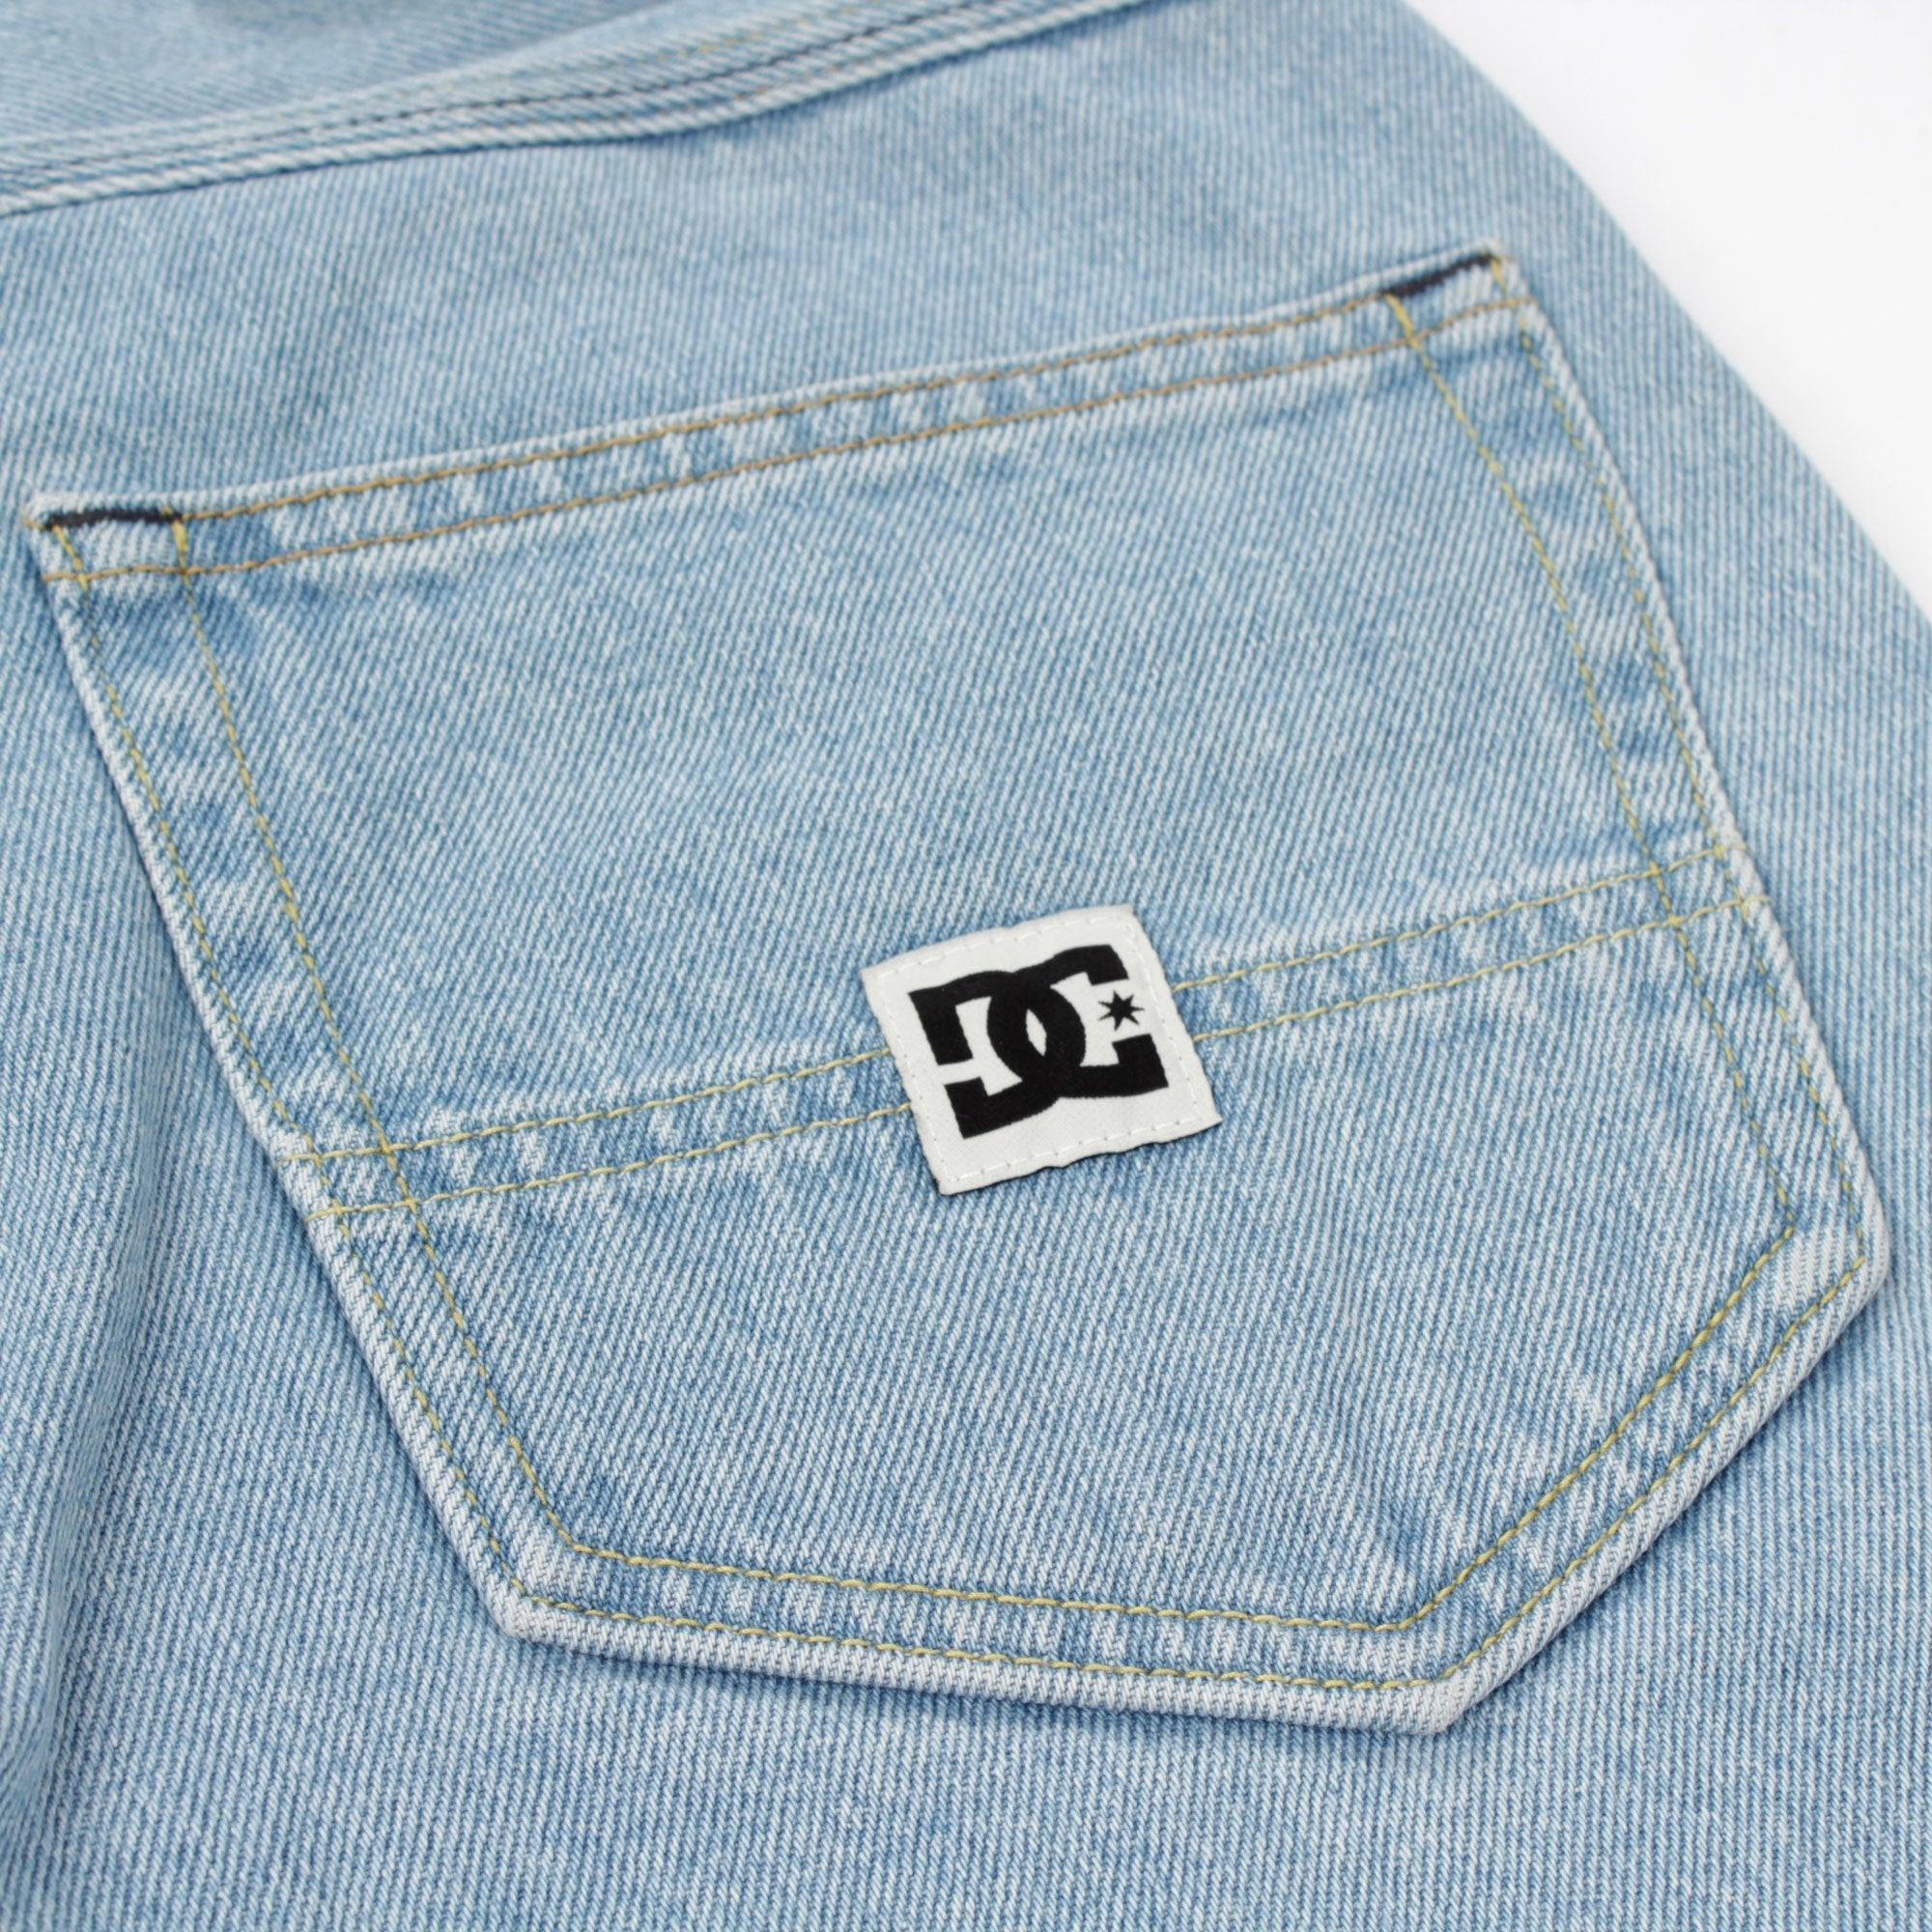 DC Worker Pant Product Photo #3